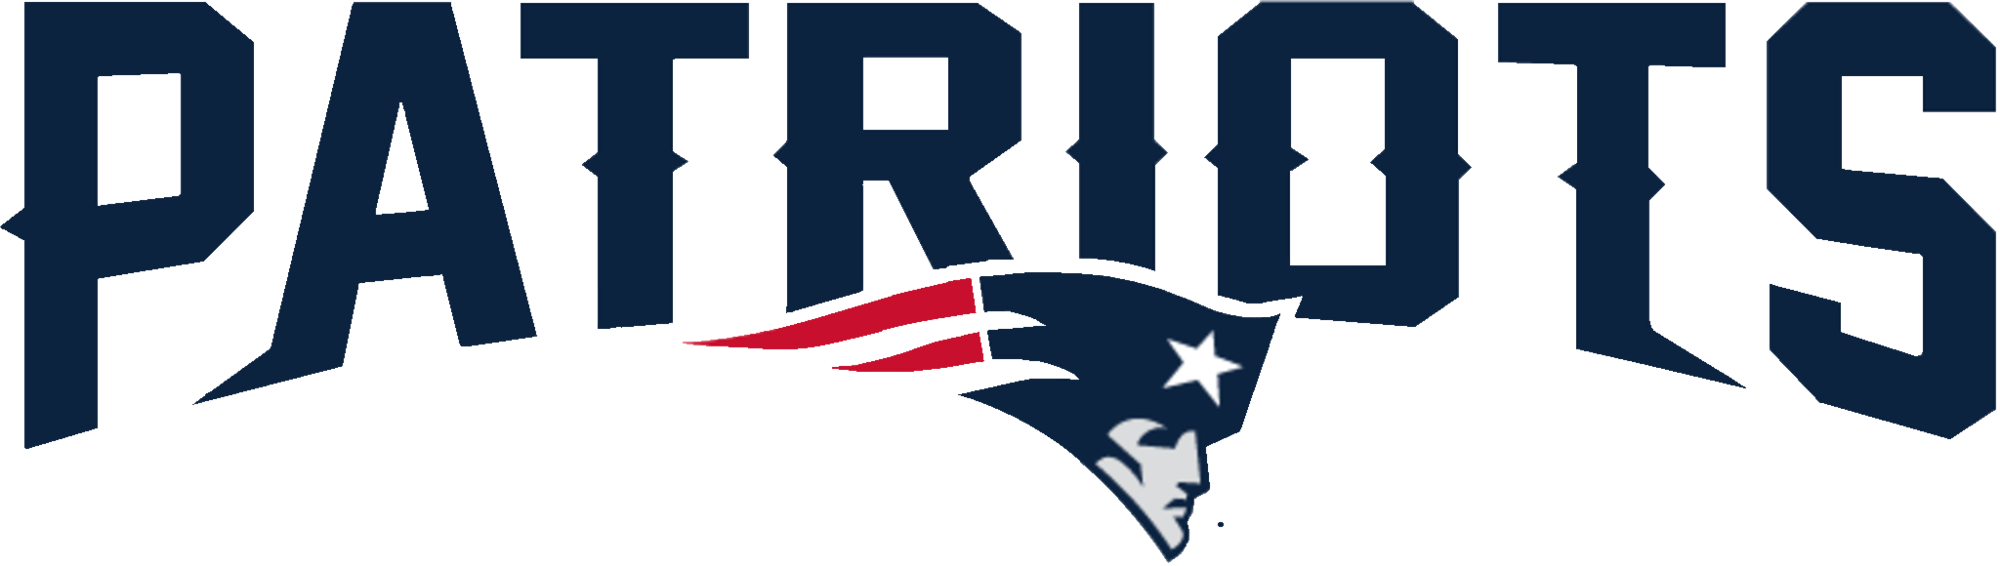 Patriots logo png. New england american football